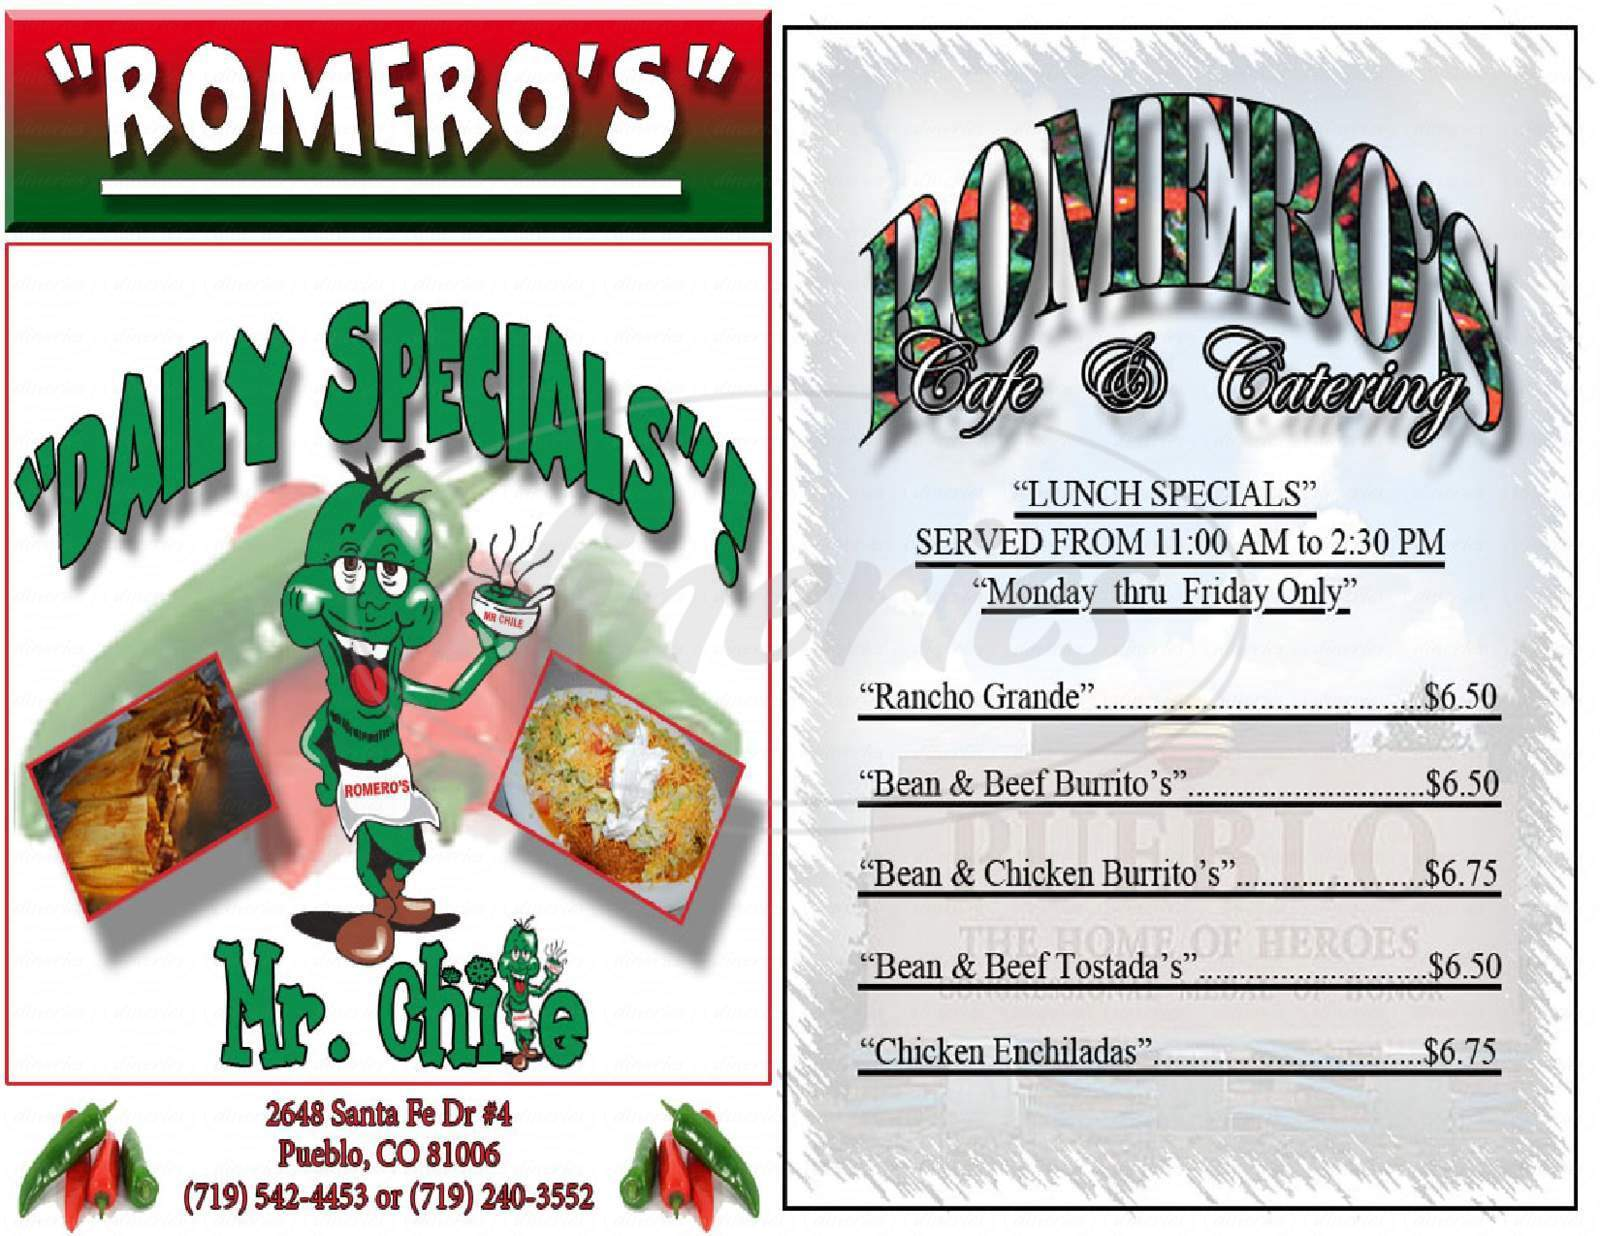 menu for Romero's Cafe & Catering